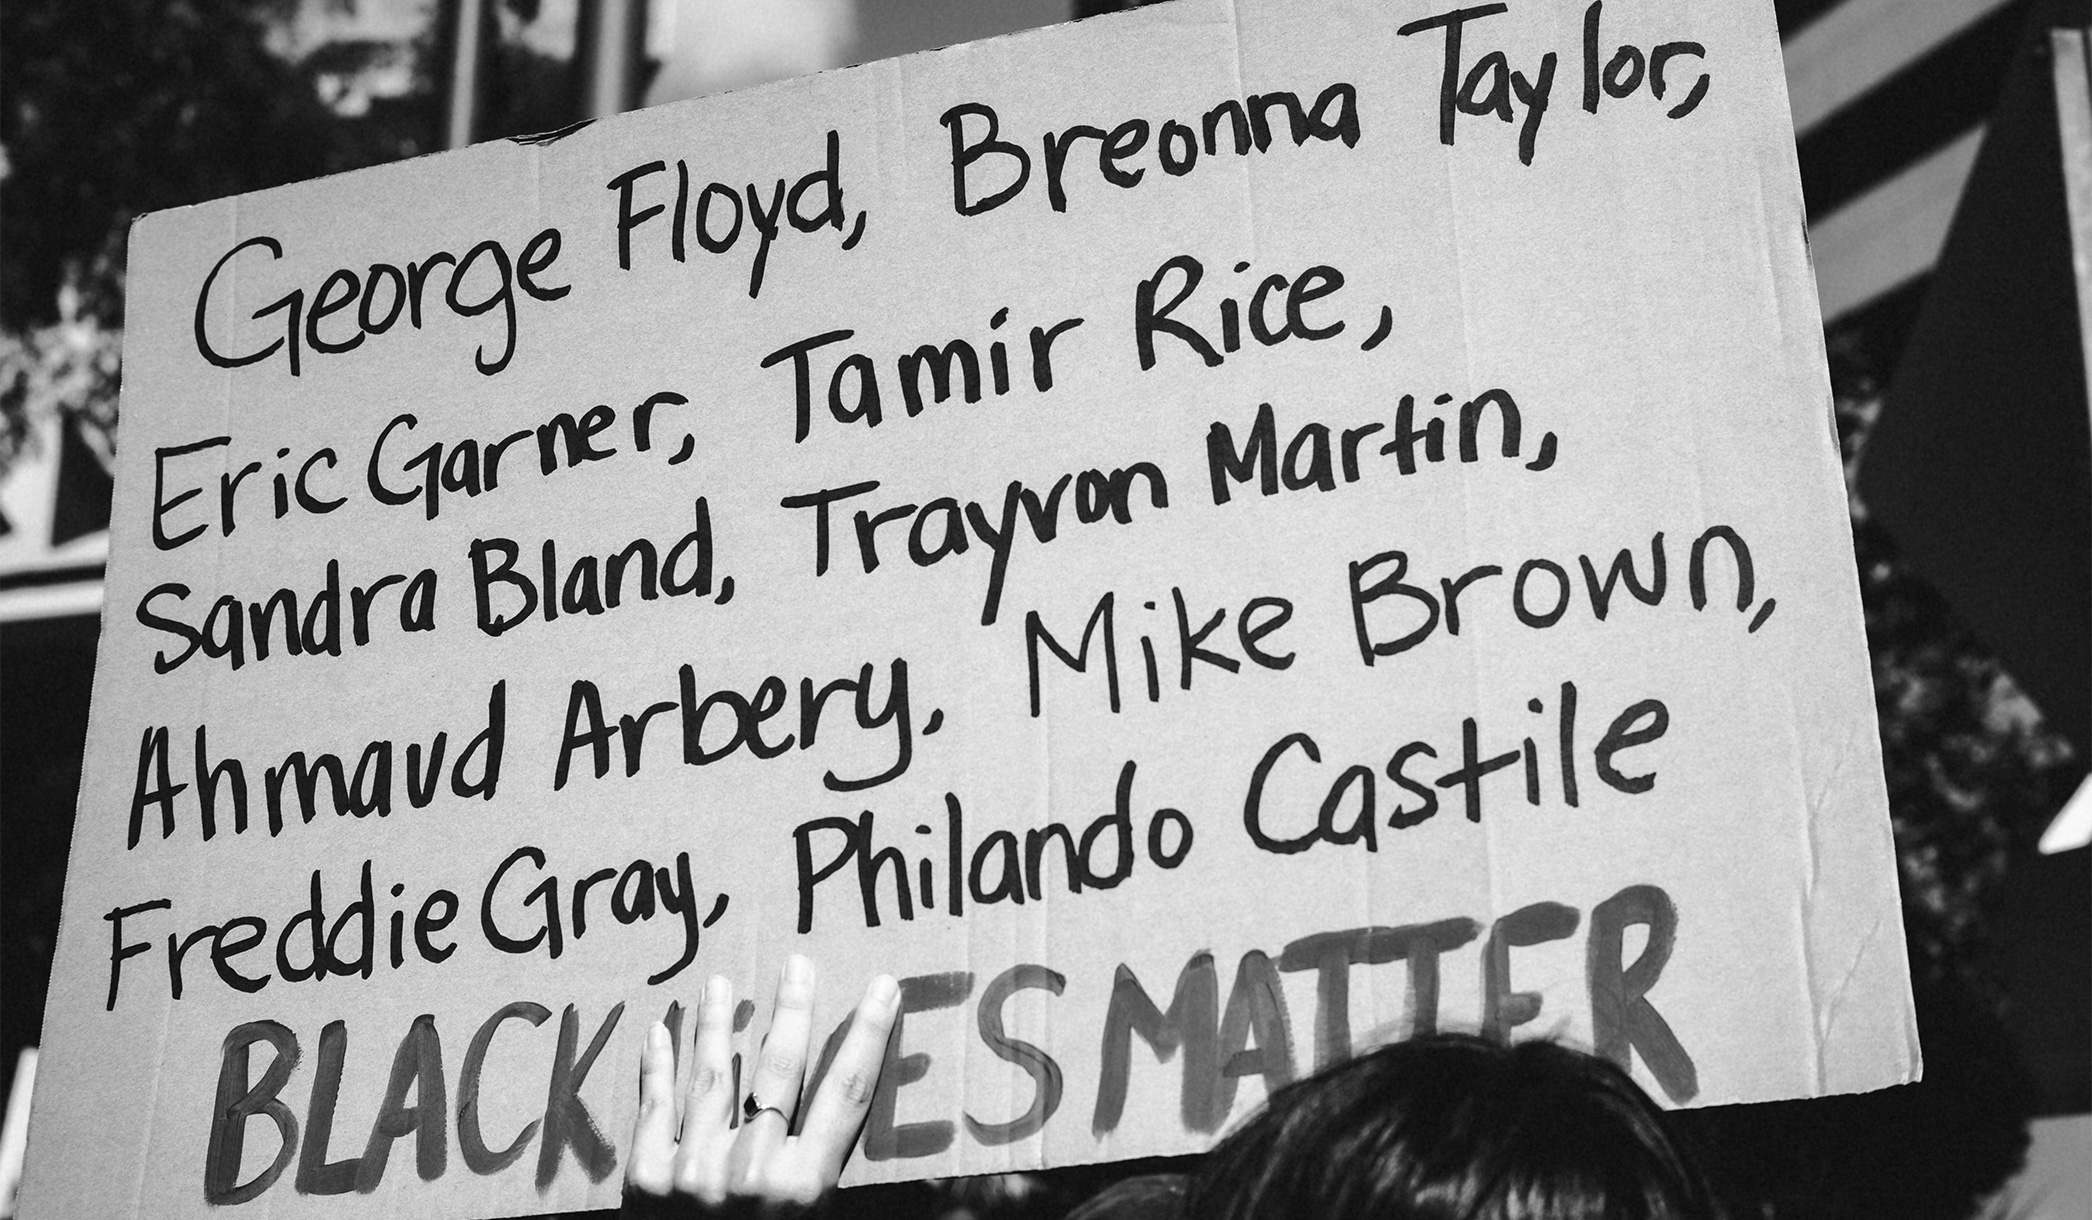 A protest sign featuring the names George Floyd, Breonna Taylor, Eric Garner, Tamir Rice, Sandra Bland, Trayvon Martin, Ahmaud Arbery, Mike Brown, Freddie Gray, and Philando Castile above the words Black Lives Matter.